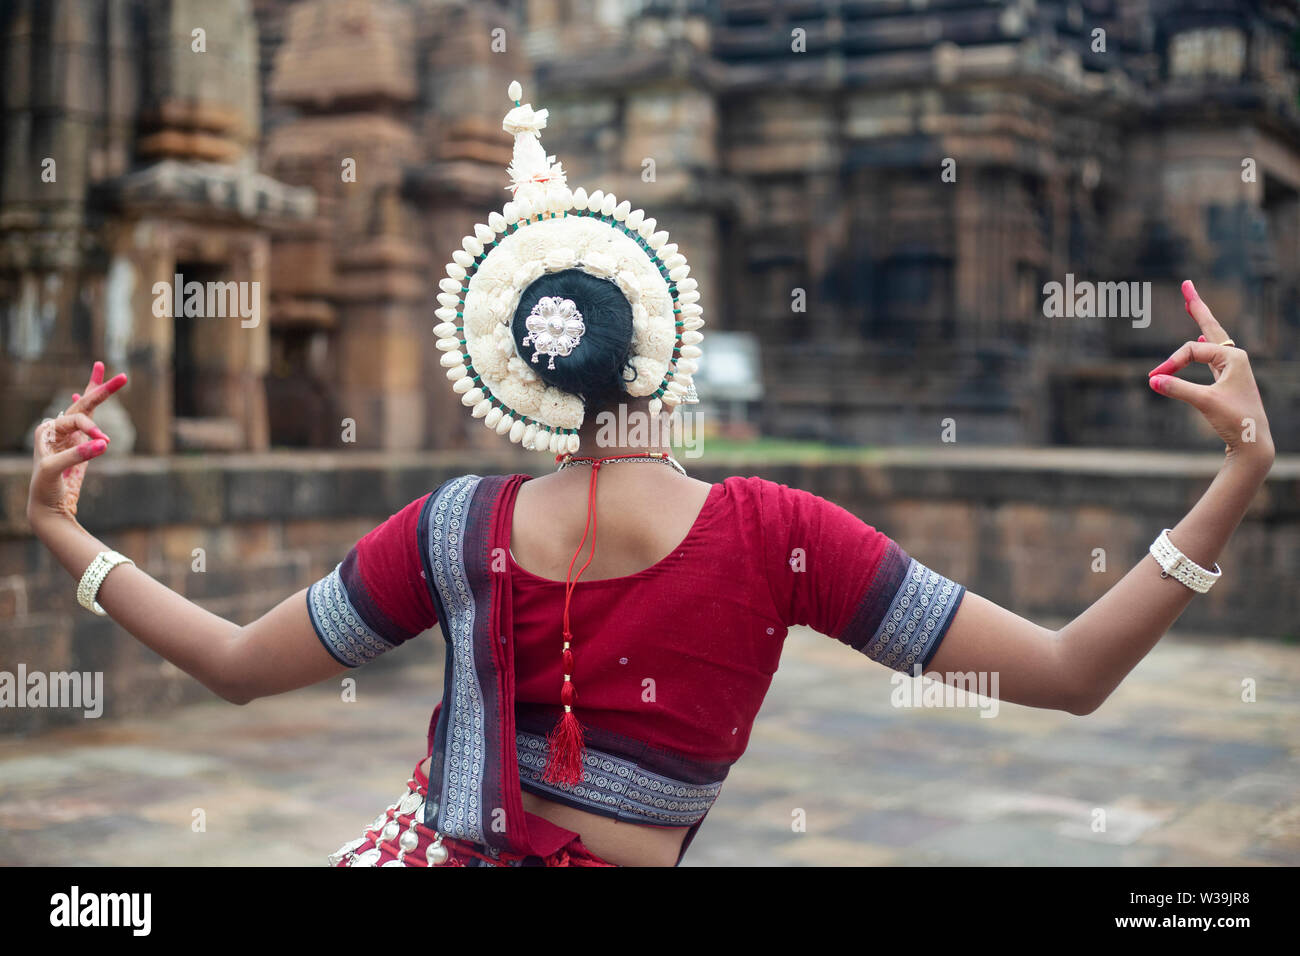 Odisha Girl Stock Photos & Odisha Girl Stock Images - Alamy